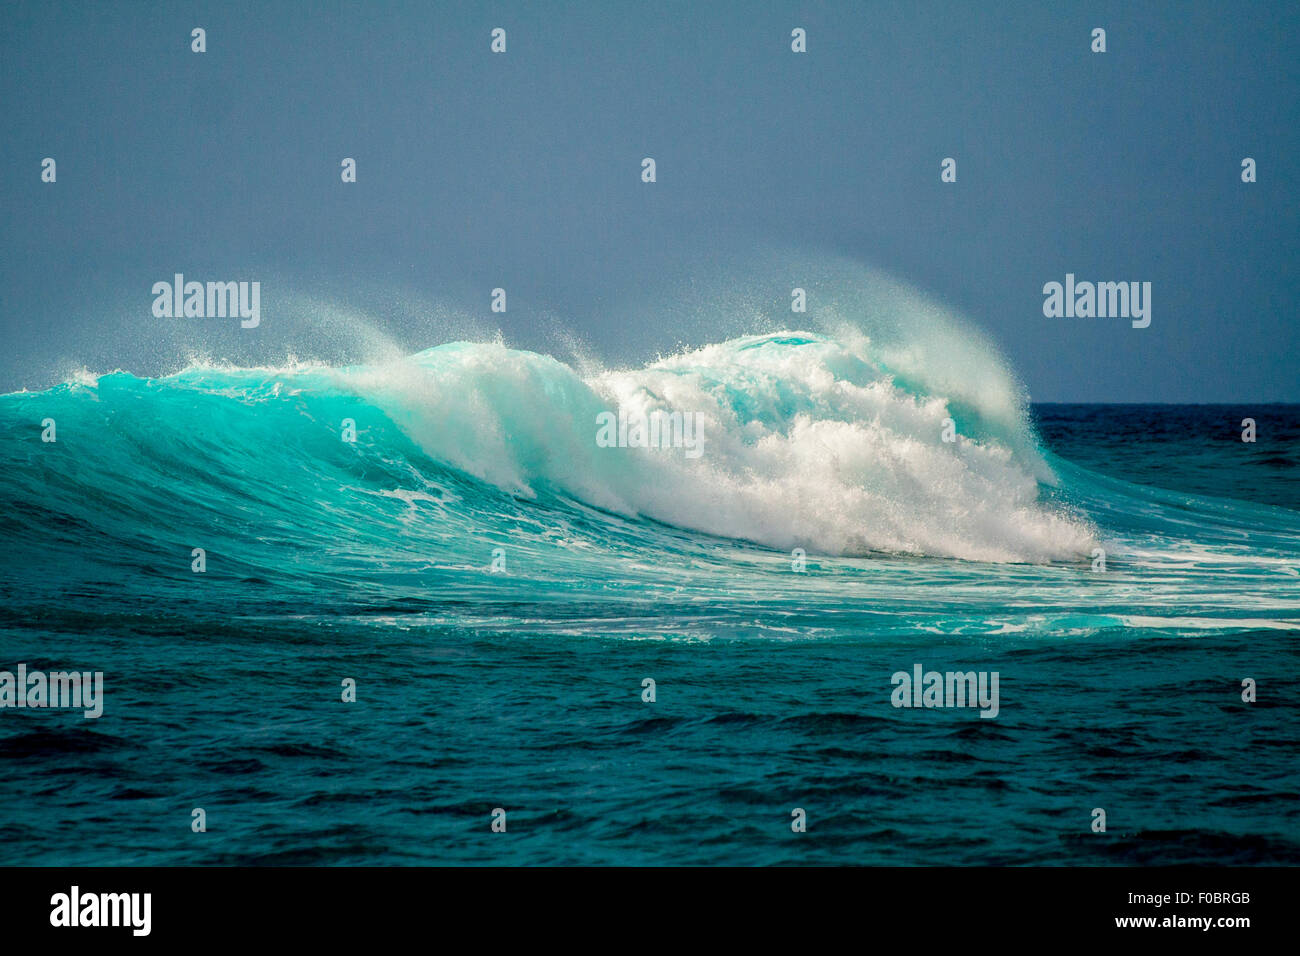 Imposing waves crash against the prevailing wind - Stock Image